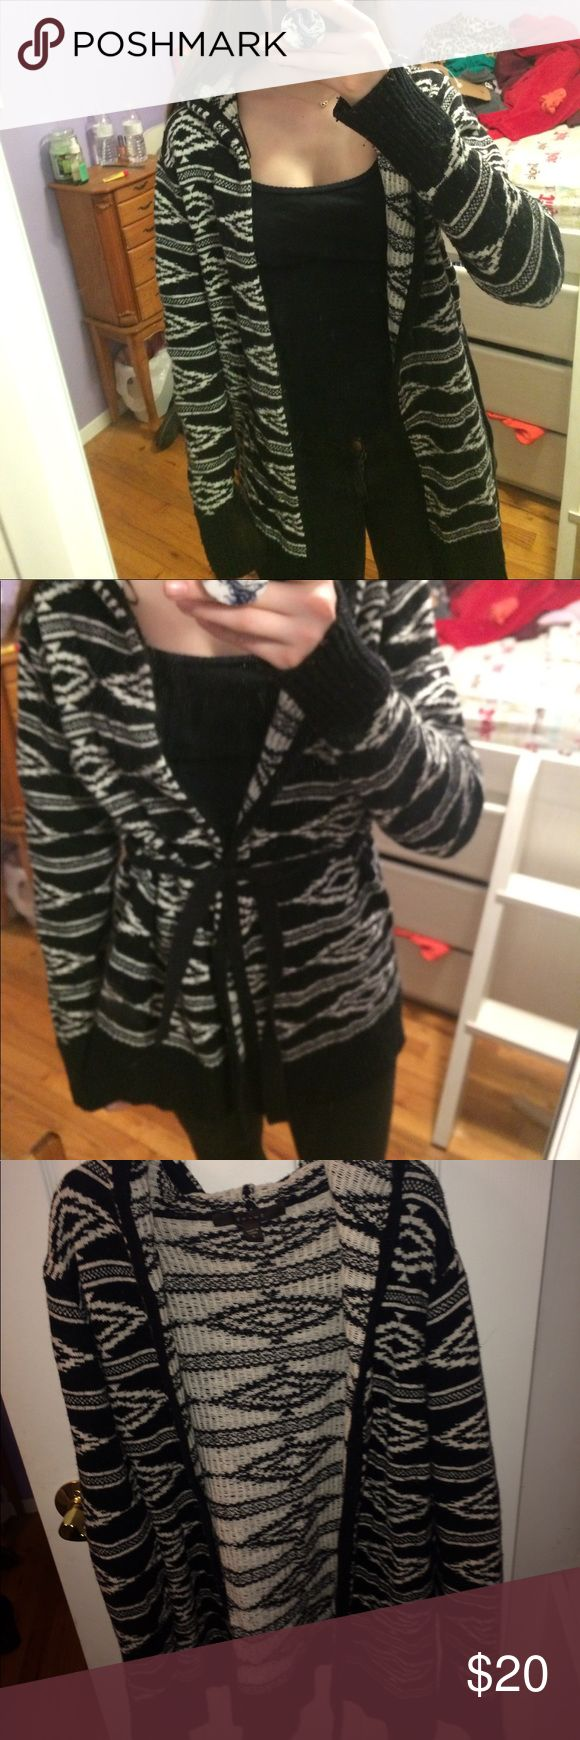 Tribal print cardigan Hooded thick black and white tribal print cardigan. Comes with detachable black cloth belt. Lightly worn good condition. Size large but I normally wear a small but it is a comfortable fit loose fit. Will be washed before sold Fever Sweaters Cardigans